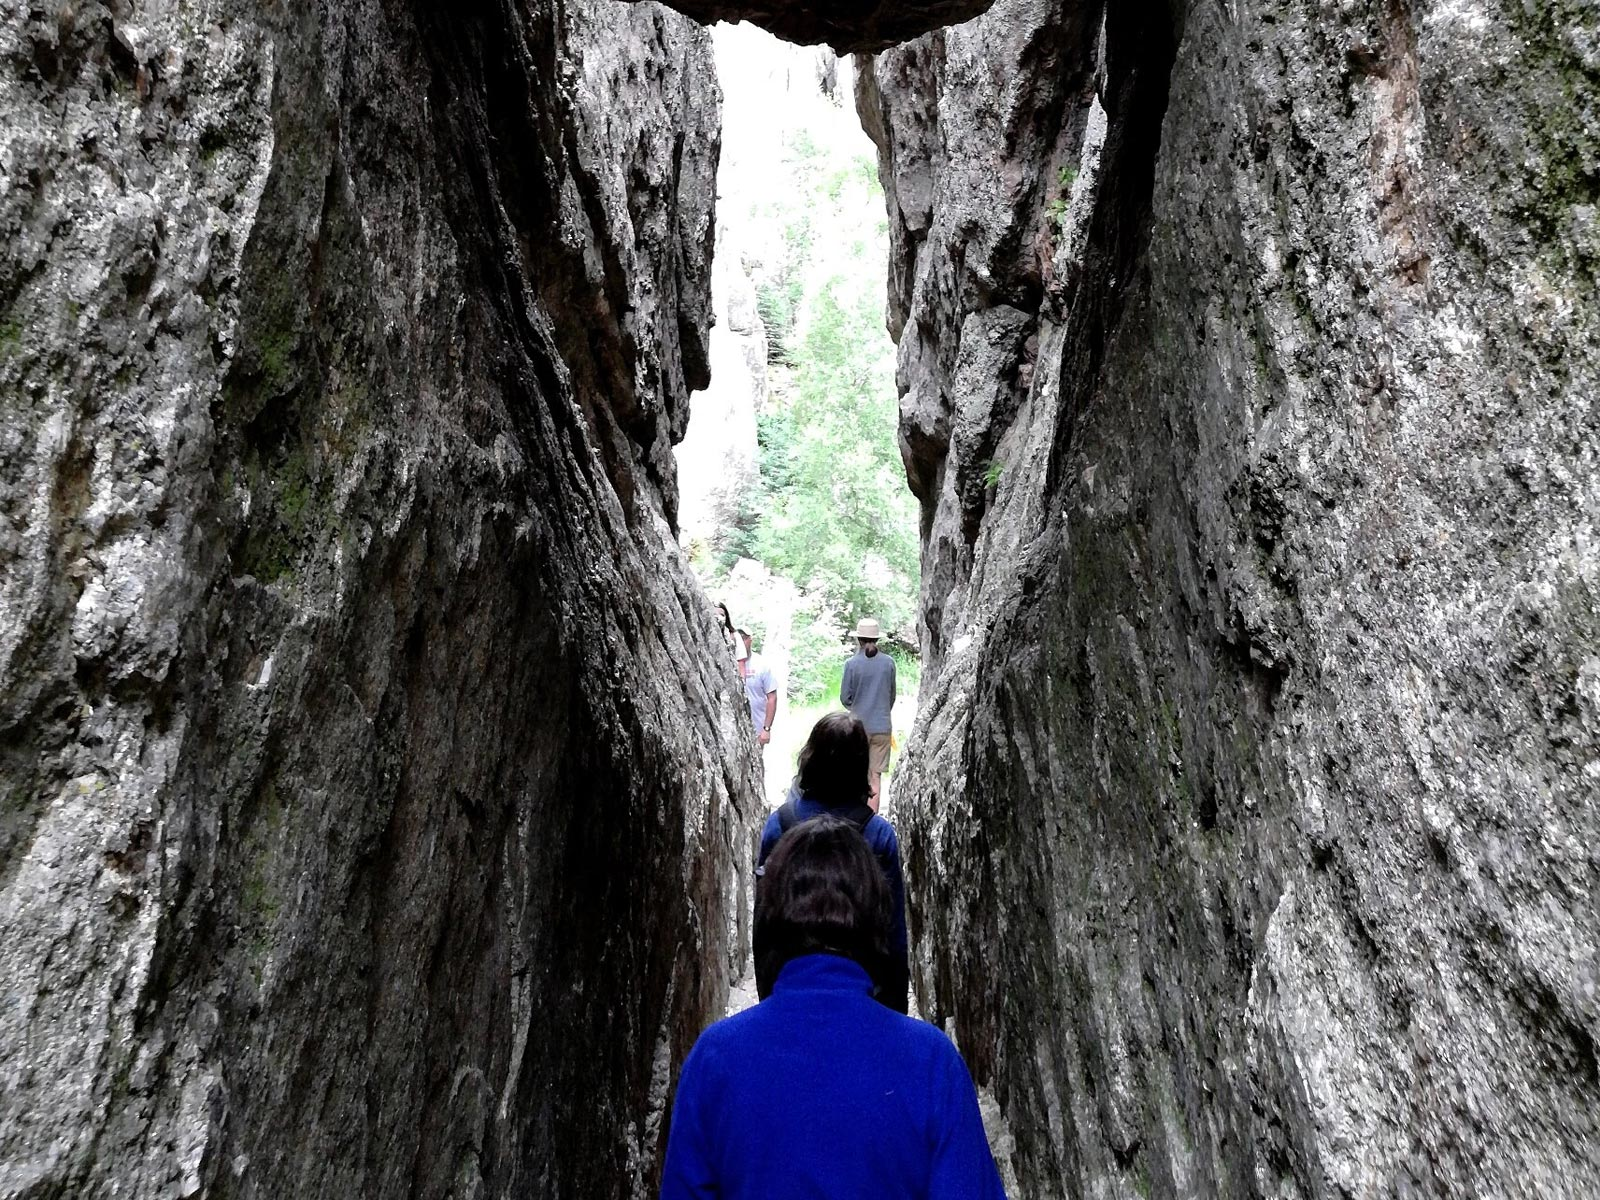 Hikers walking through narrow stone crevice on the Sunday Gulch Trail in Custer State Park, South Dakota